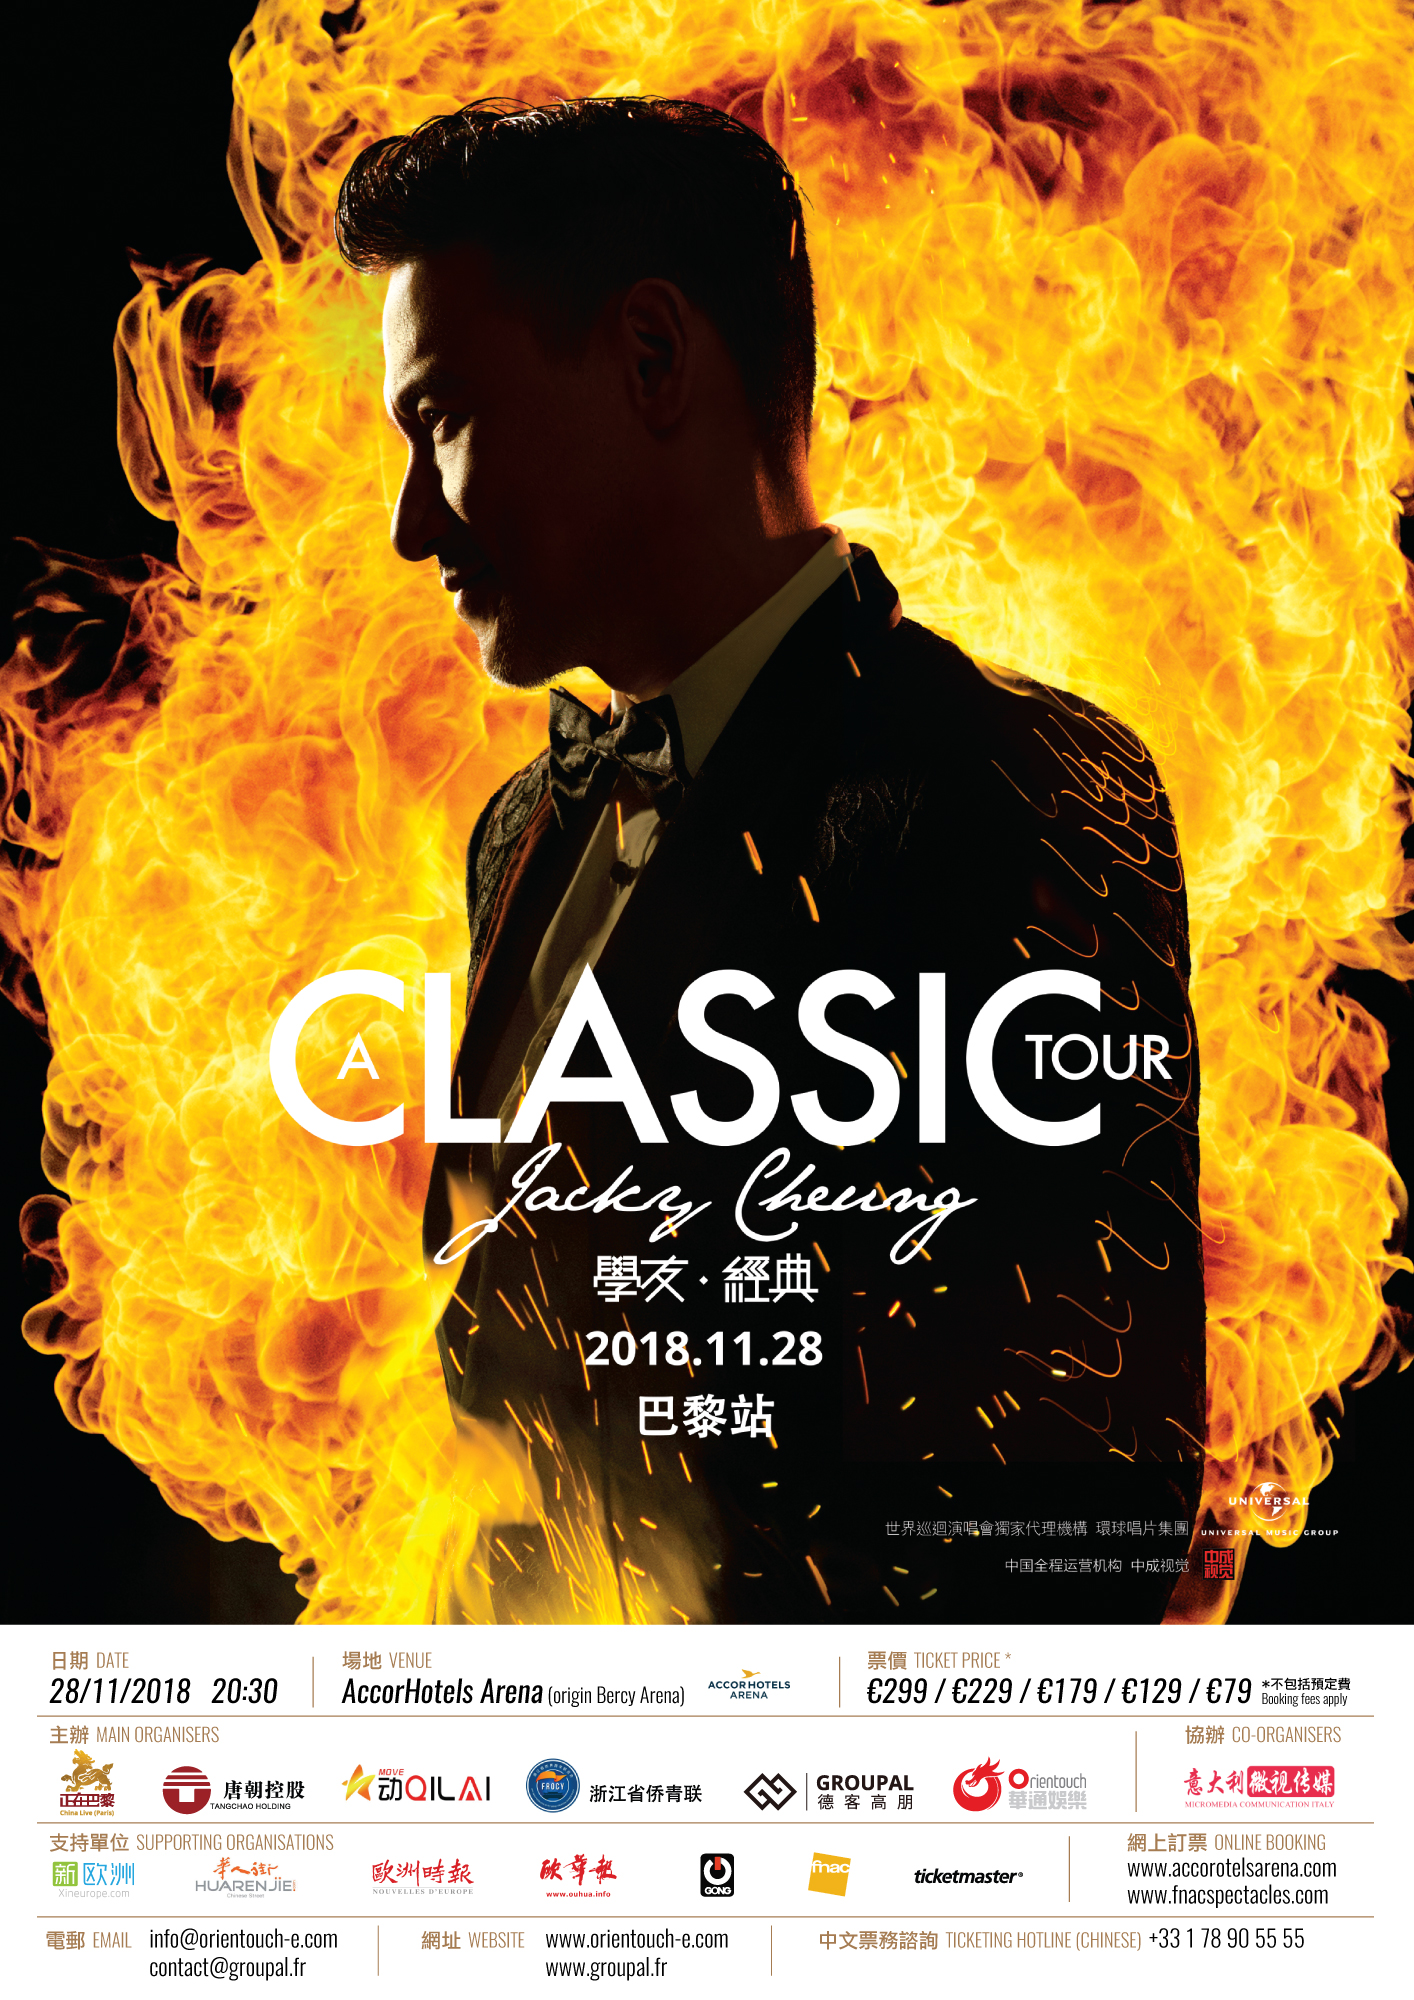 Jacky Cheung poster